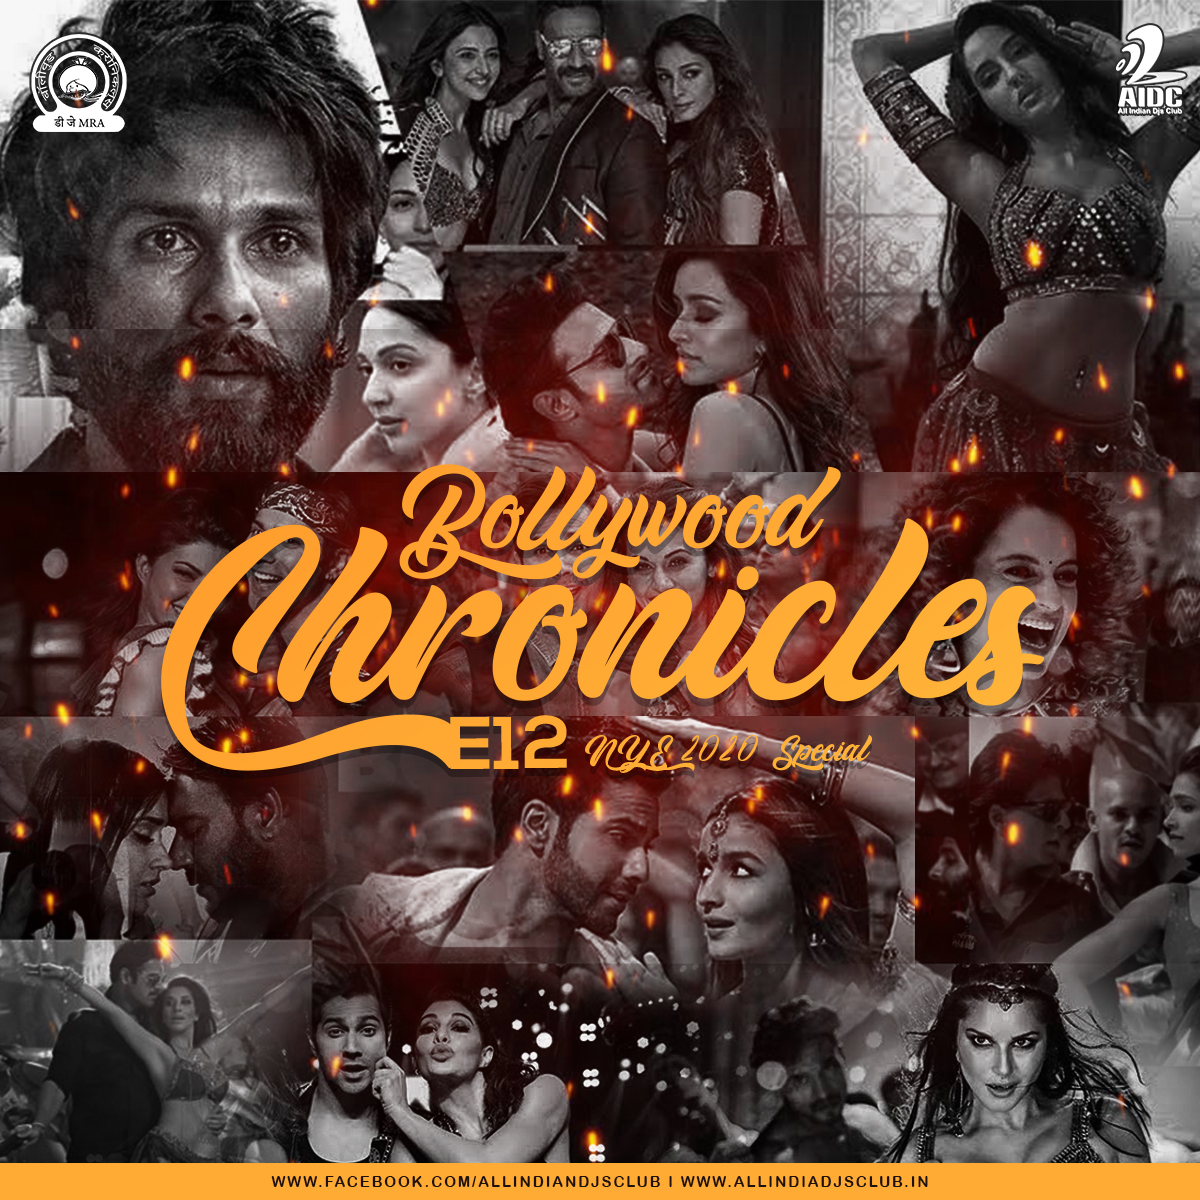 Bollywood Chronicles E12 - NYE 2020